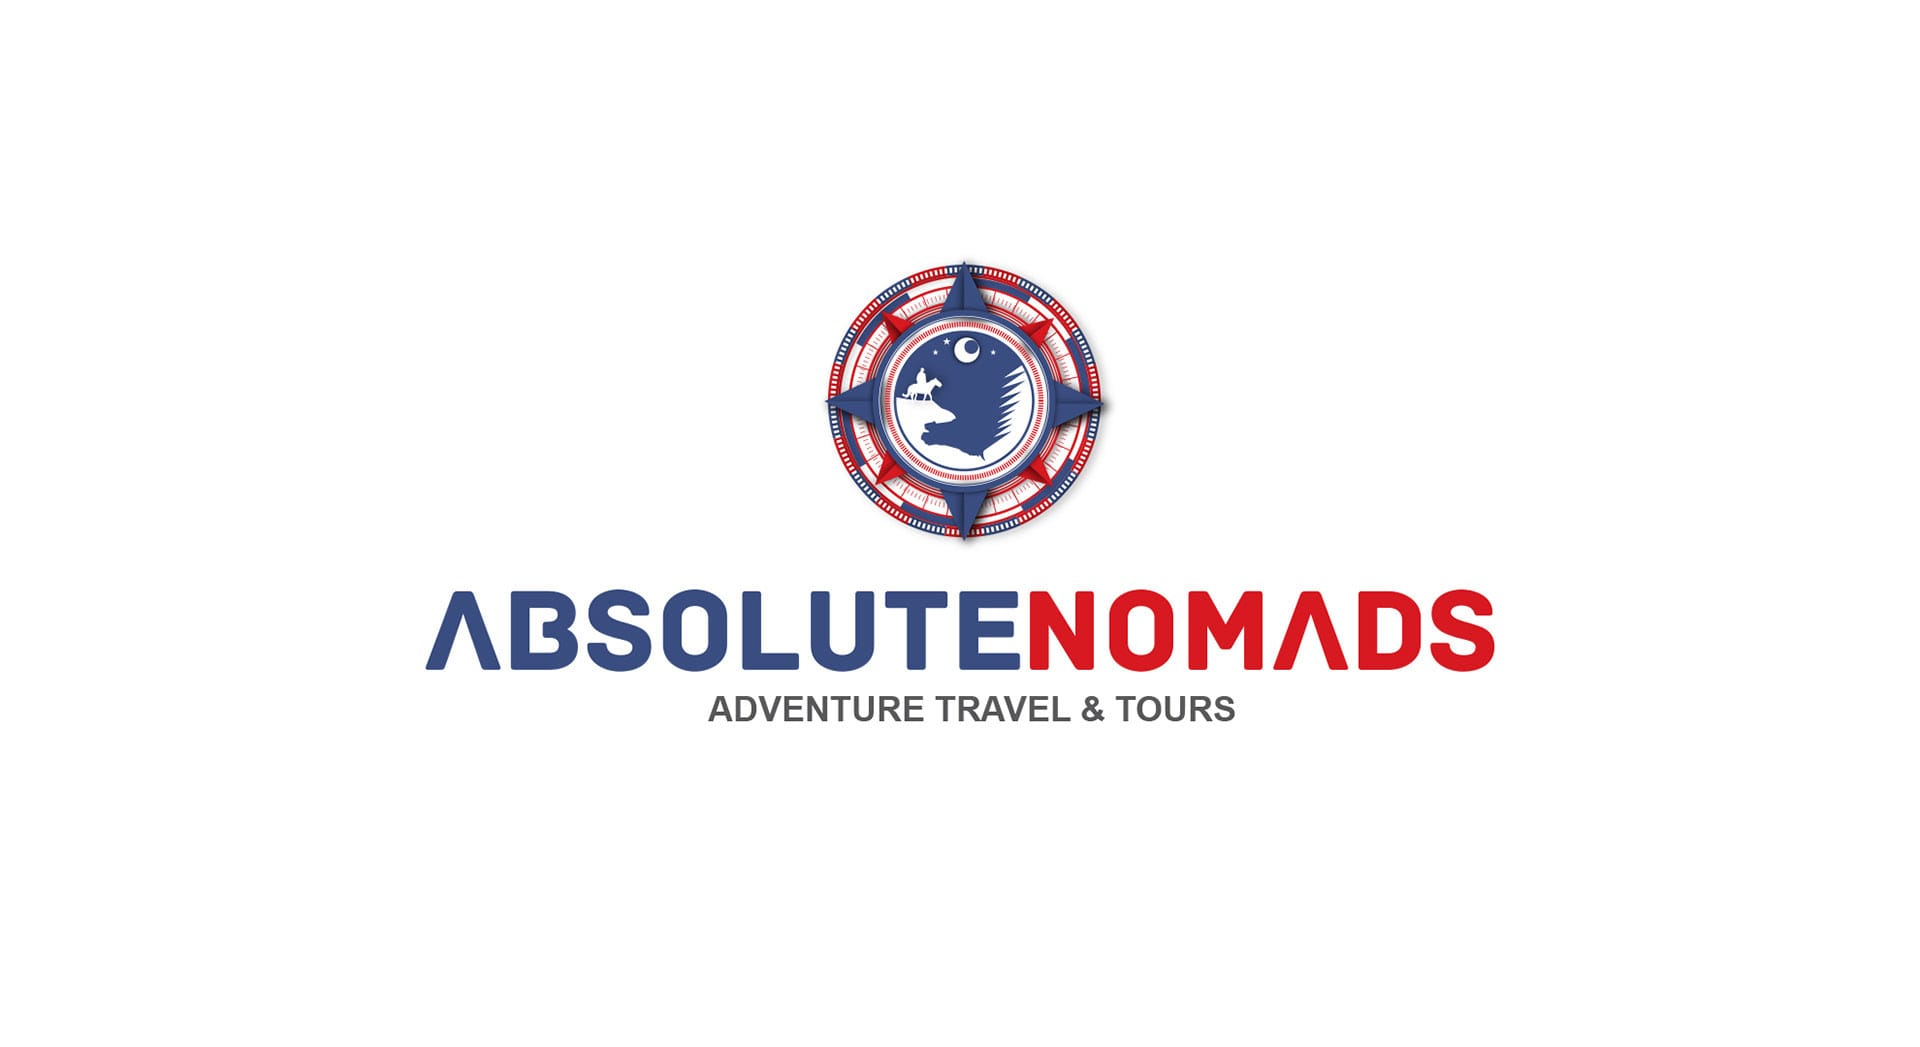 absolute nomads logo